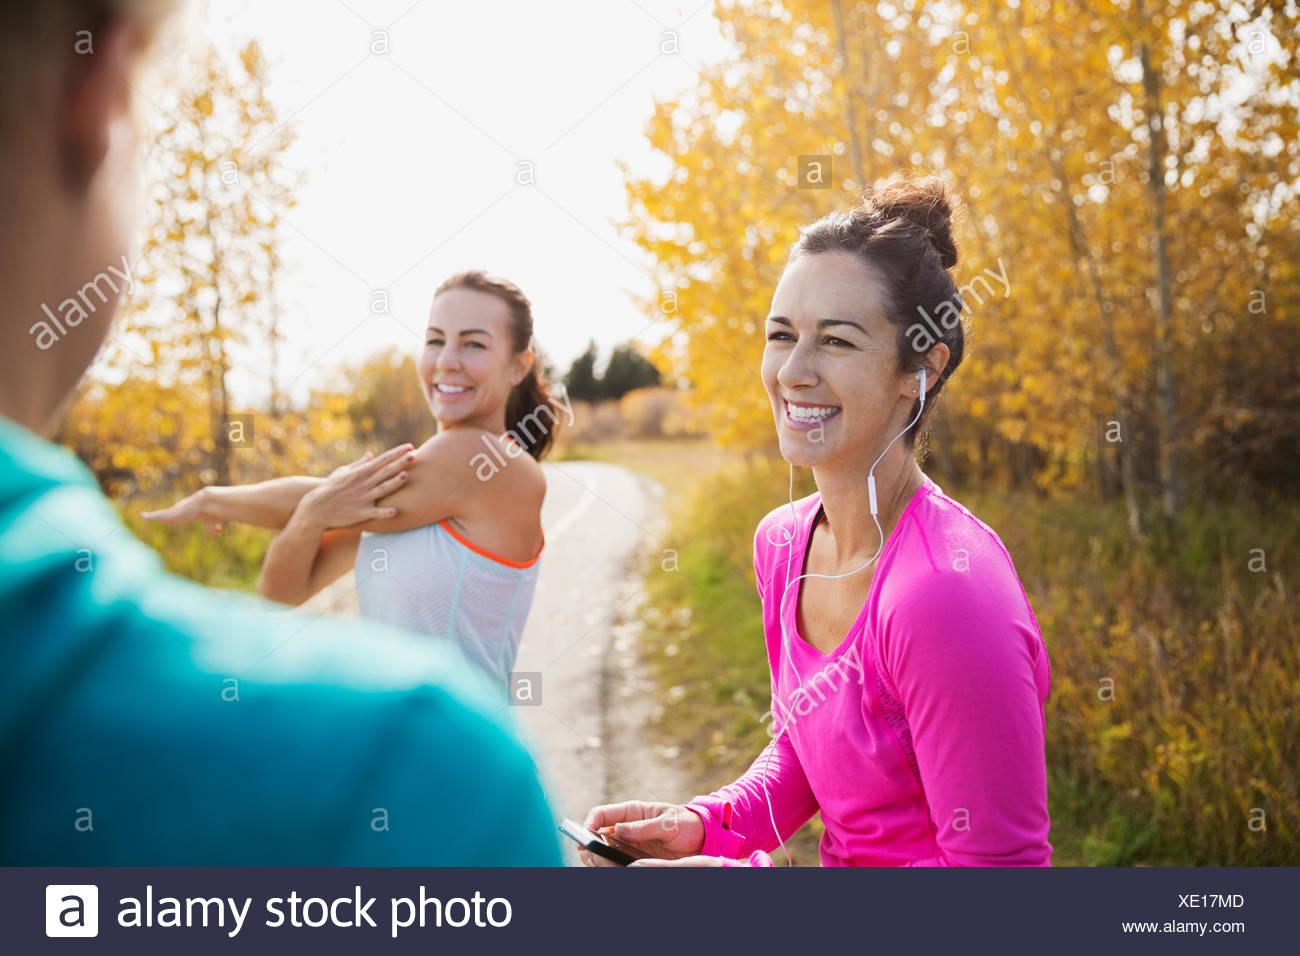 Joggers stretching and talking on autumn path - Stock Image